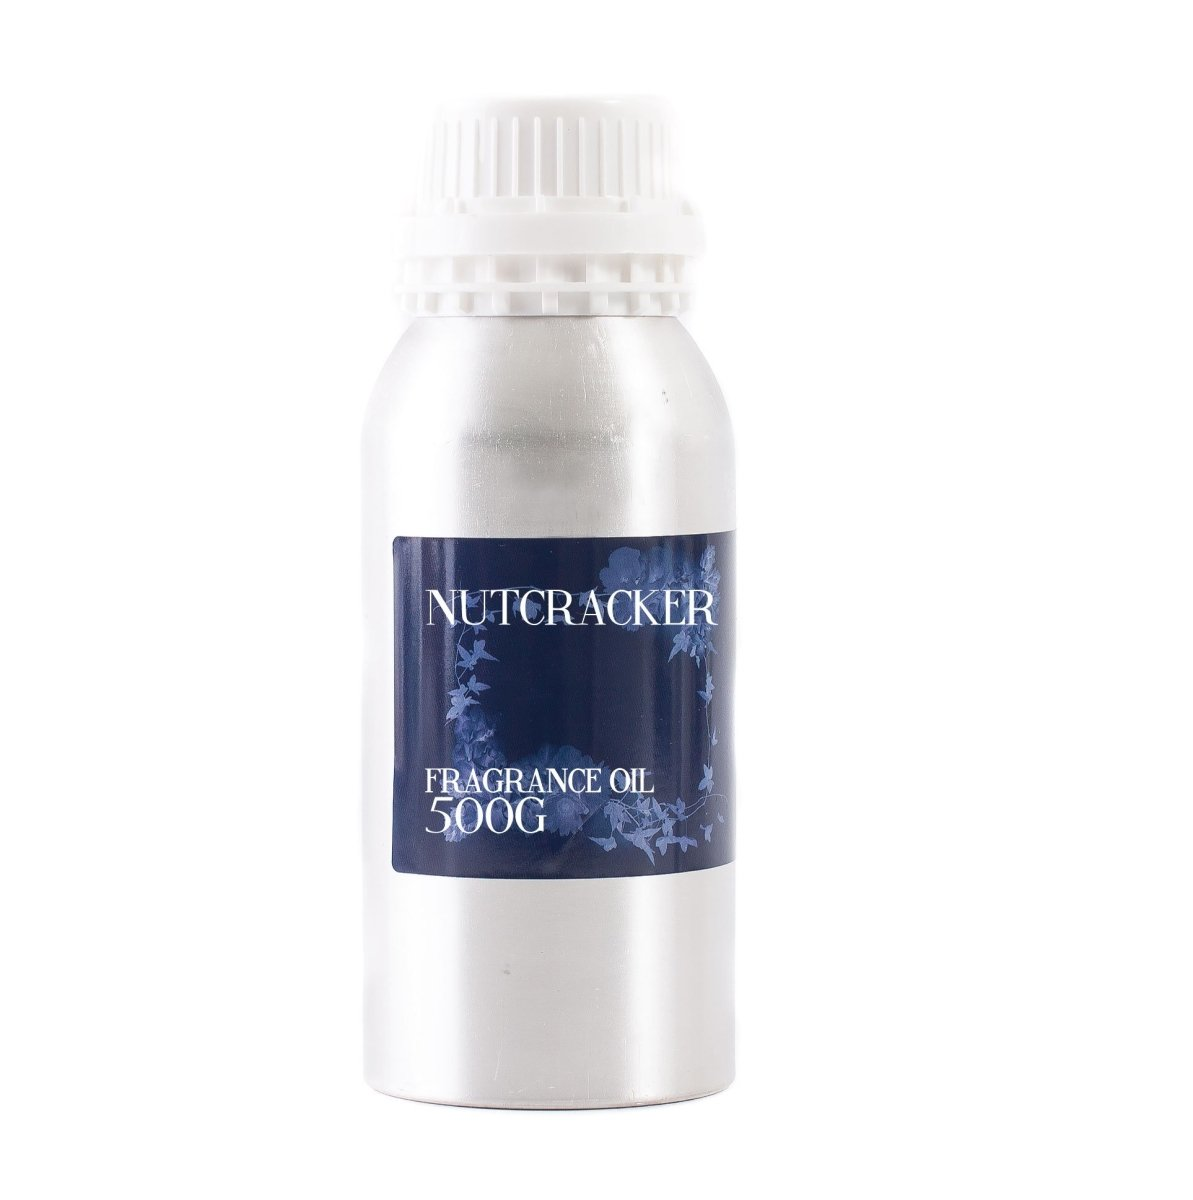 Nutcracker Fragrance Oil - Mystic Moments UK